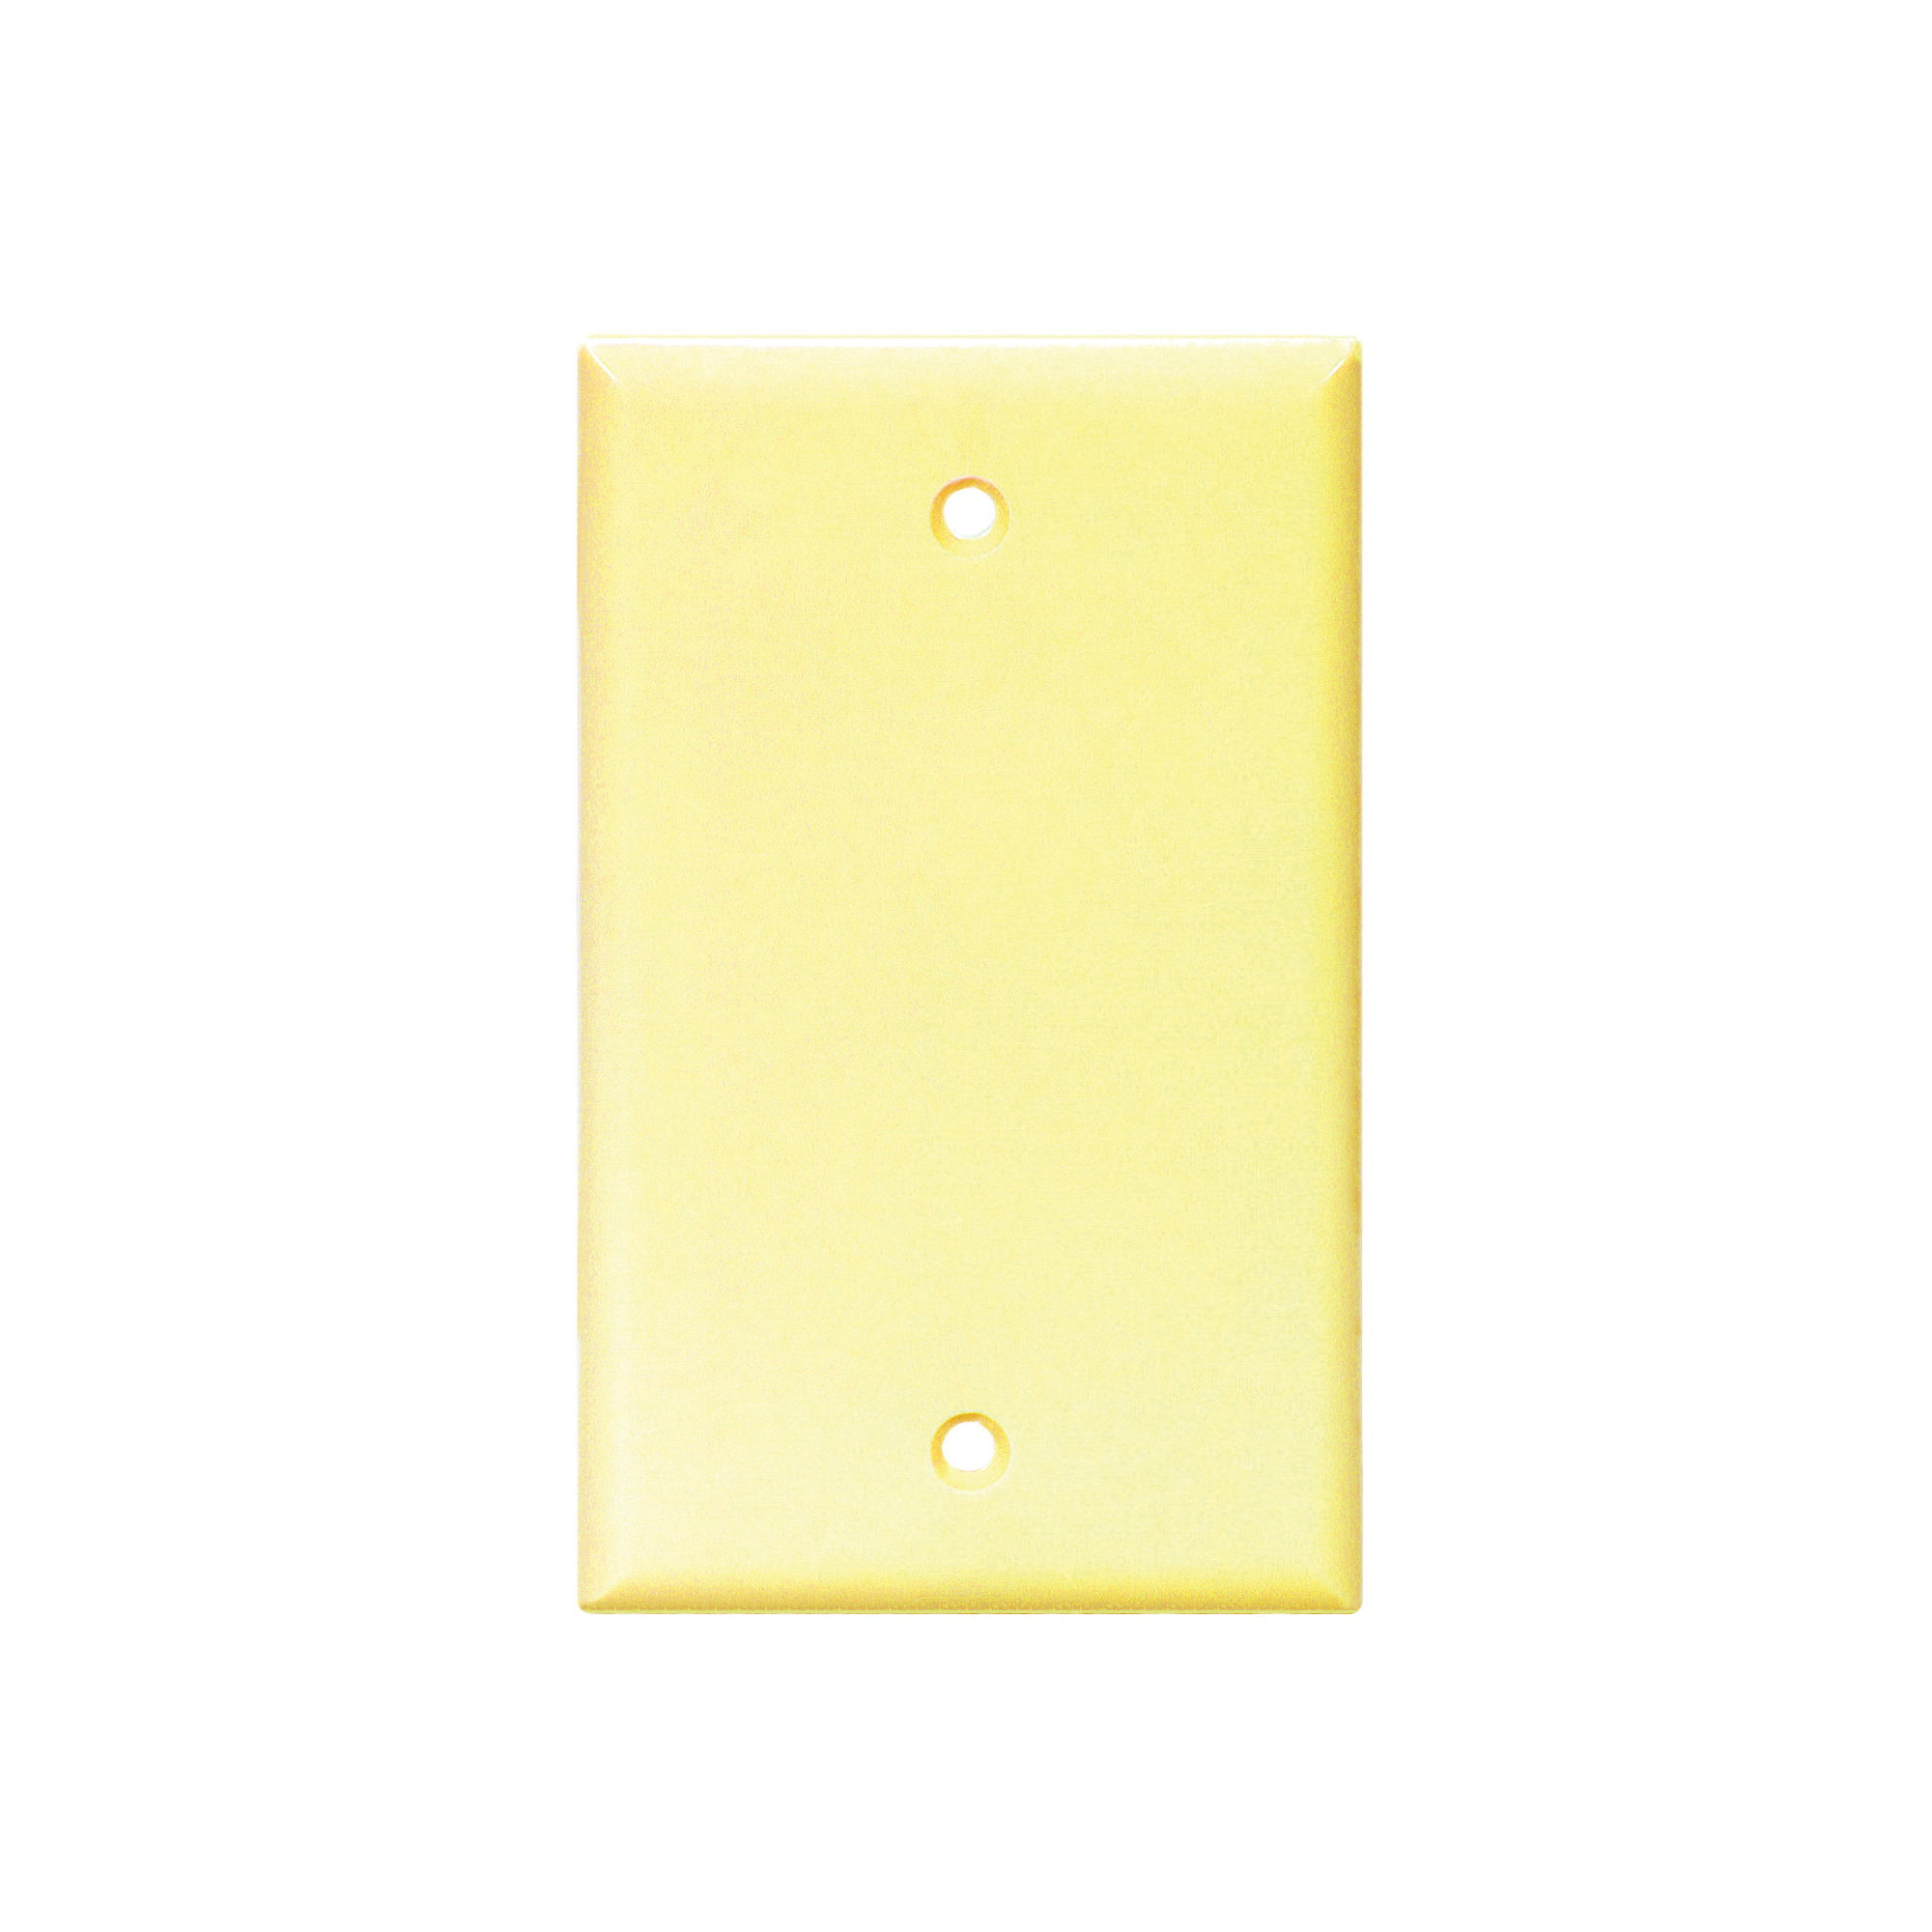 Picture of Eaton Cooper Wiring 2129 Series 2129V-BOX Wallplate, 4-1/2 in L, 2-3/4 in W, 0.08 in Thick, 1-Gang, Thermoset